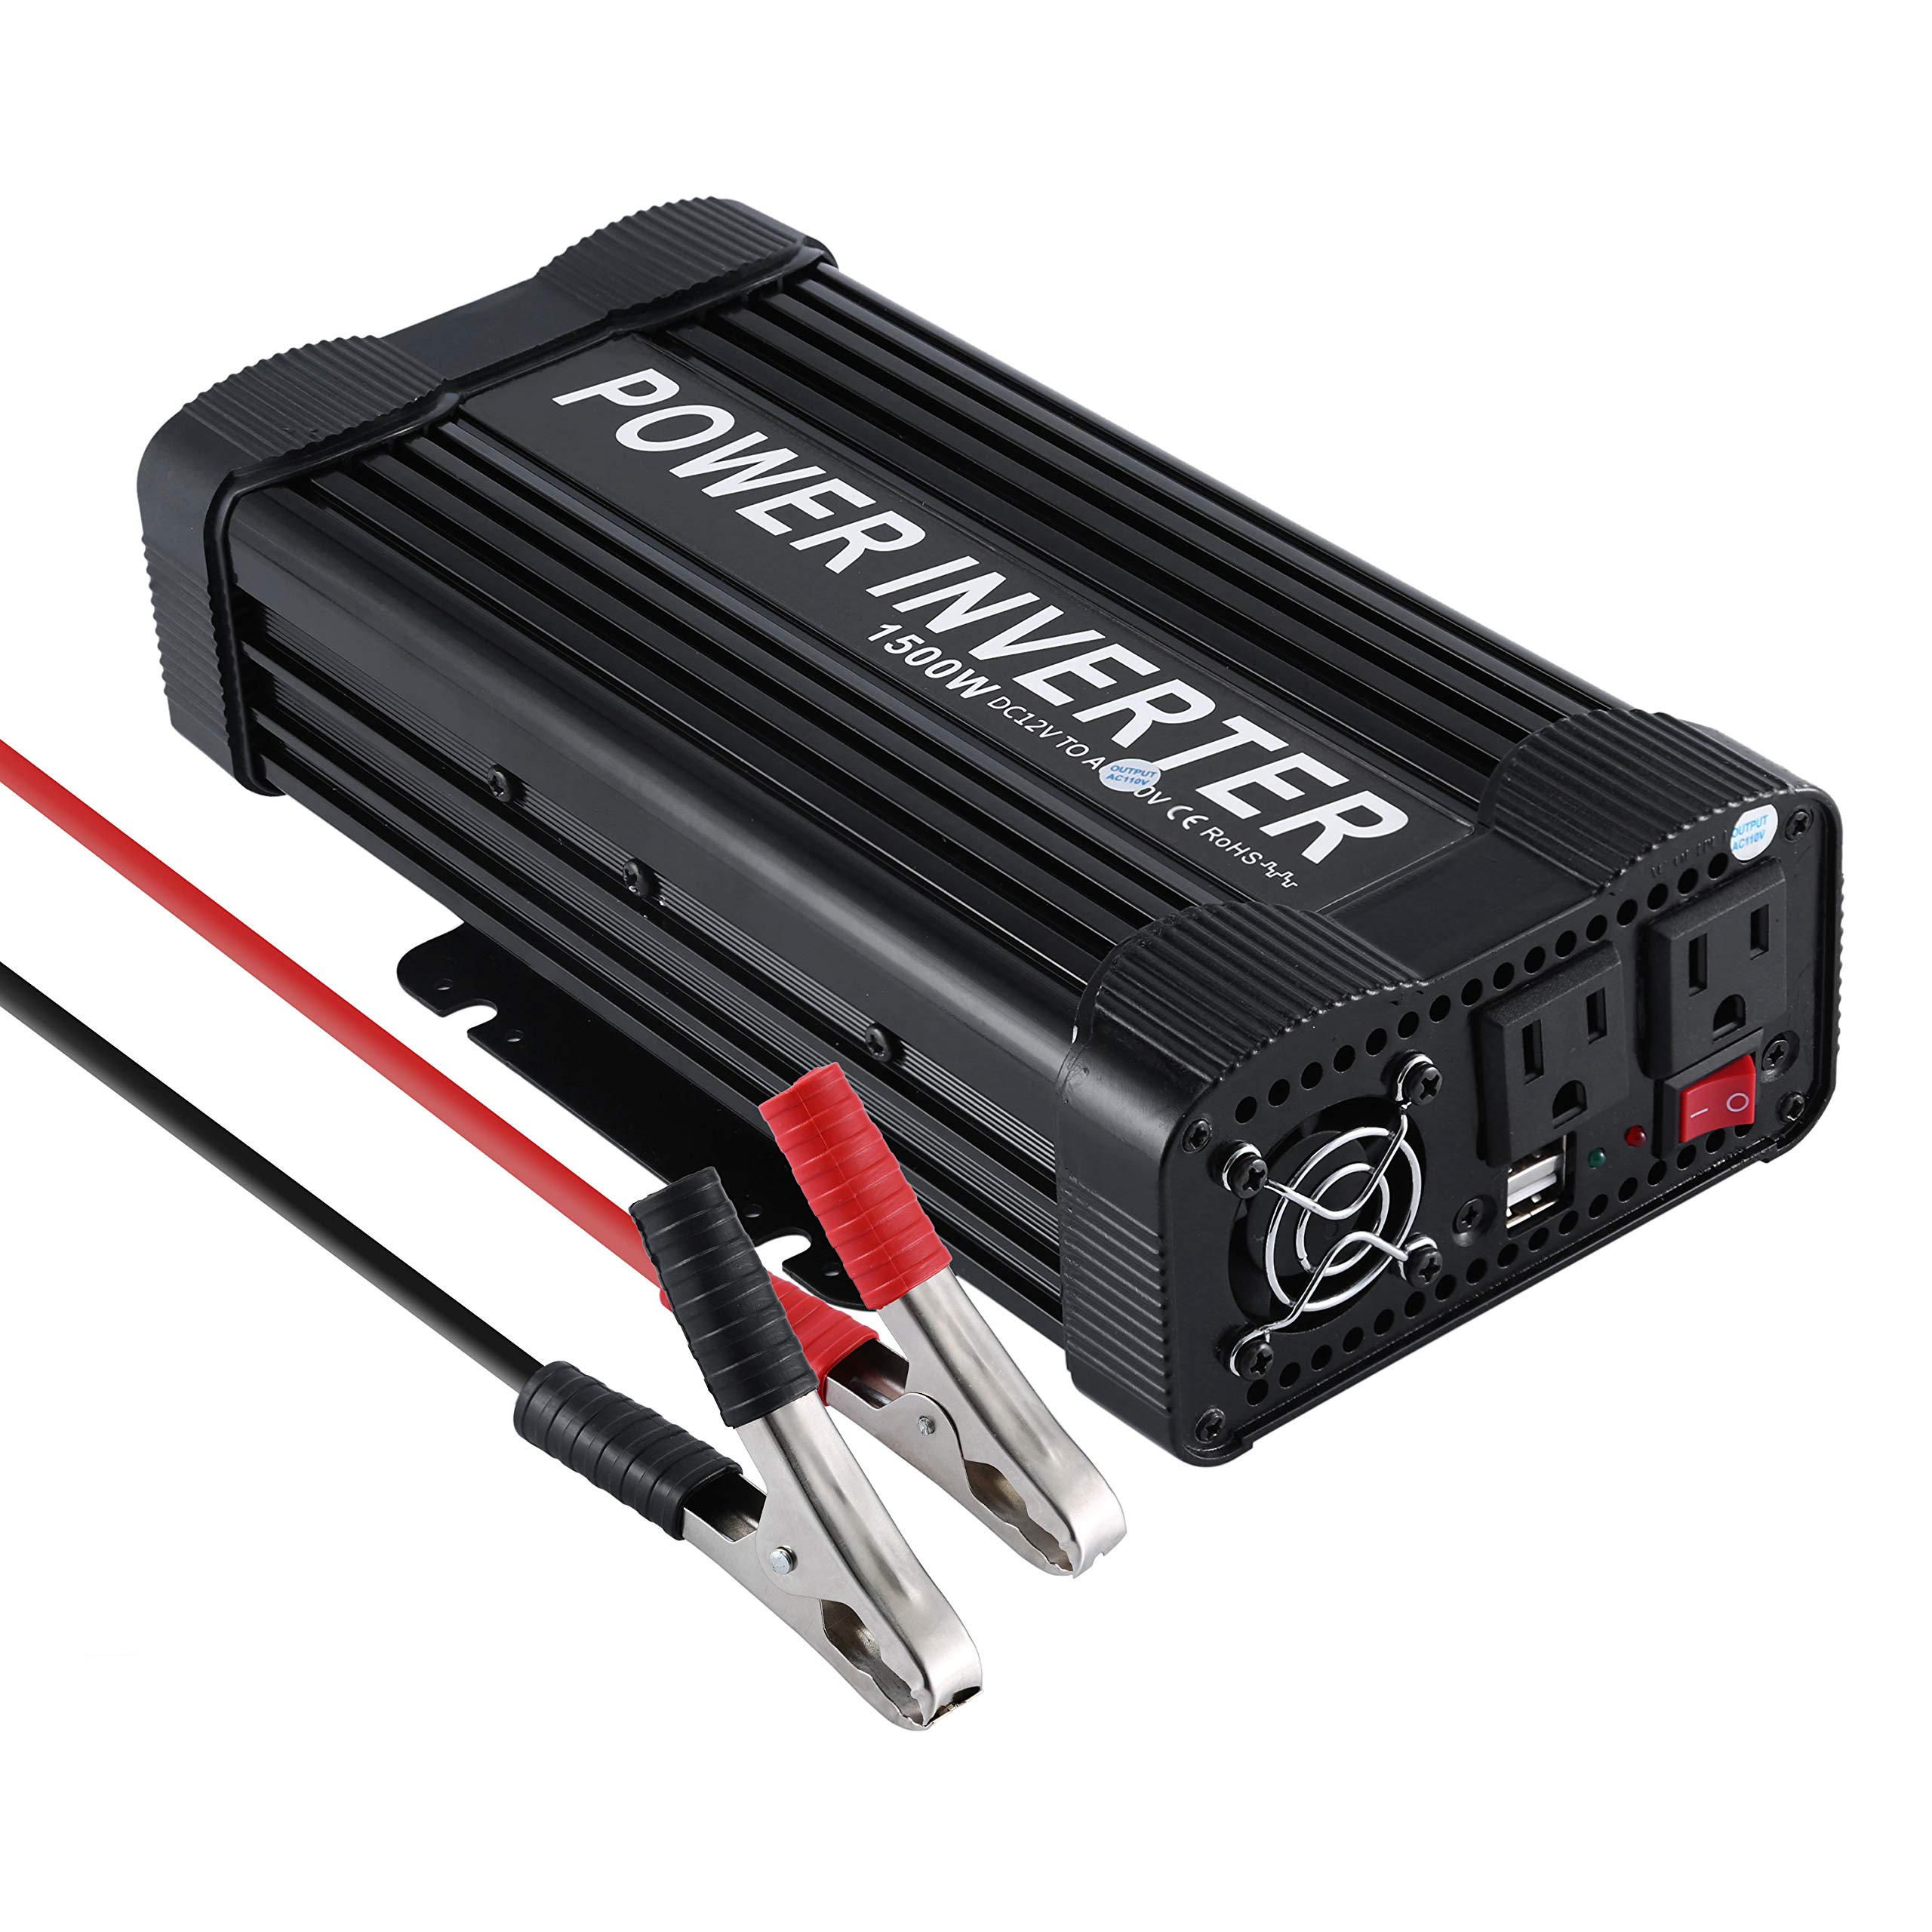 OHMOTOR 1500W Power Inverter DC 12V to 110V AC Modified Sine Wave Car Inverter,with Dual 2.1A USB Ports and US Sockets Suit for iPad,Phone,Tablet,Laptop (1500W) by OHMOTOR